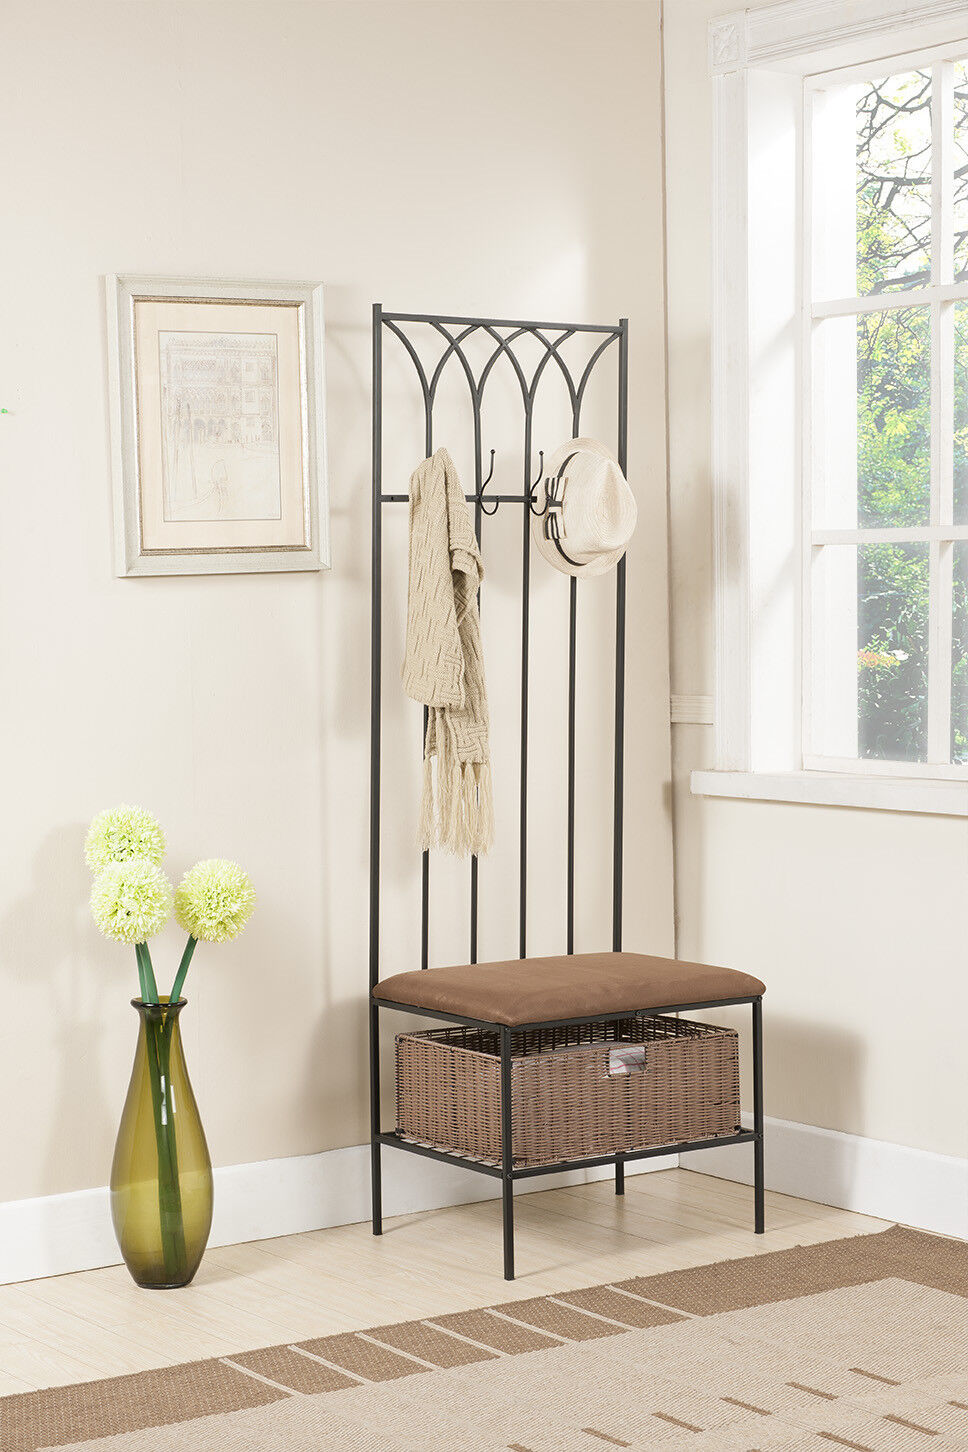 Image Result For Entryway Bench And Coat Rack